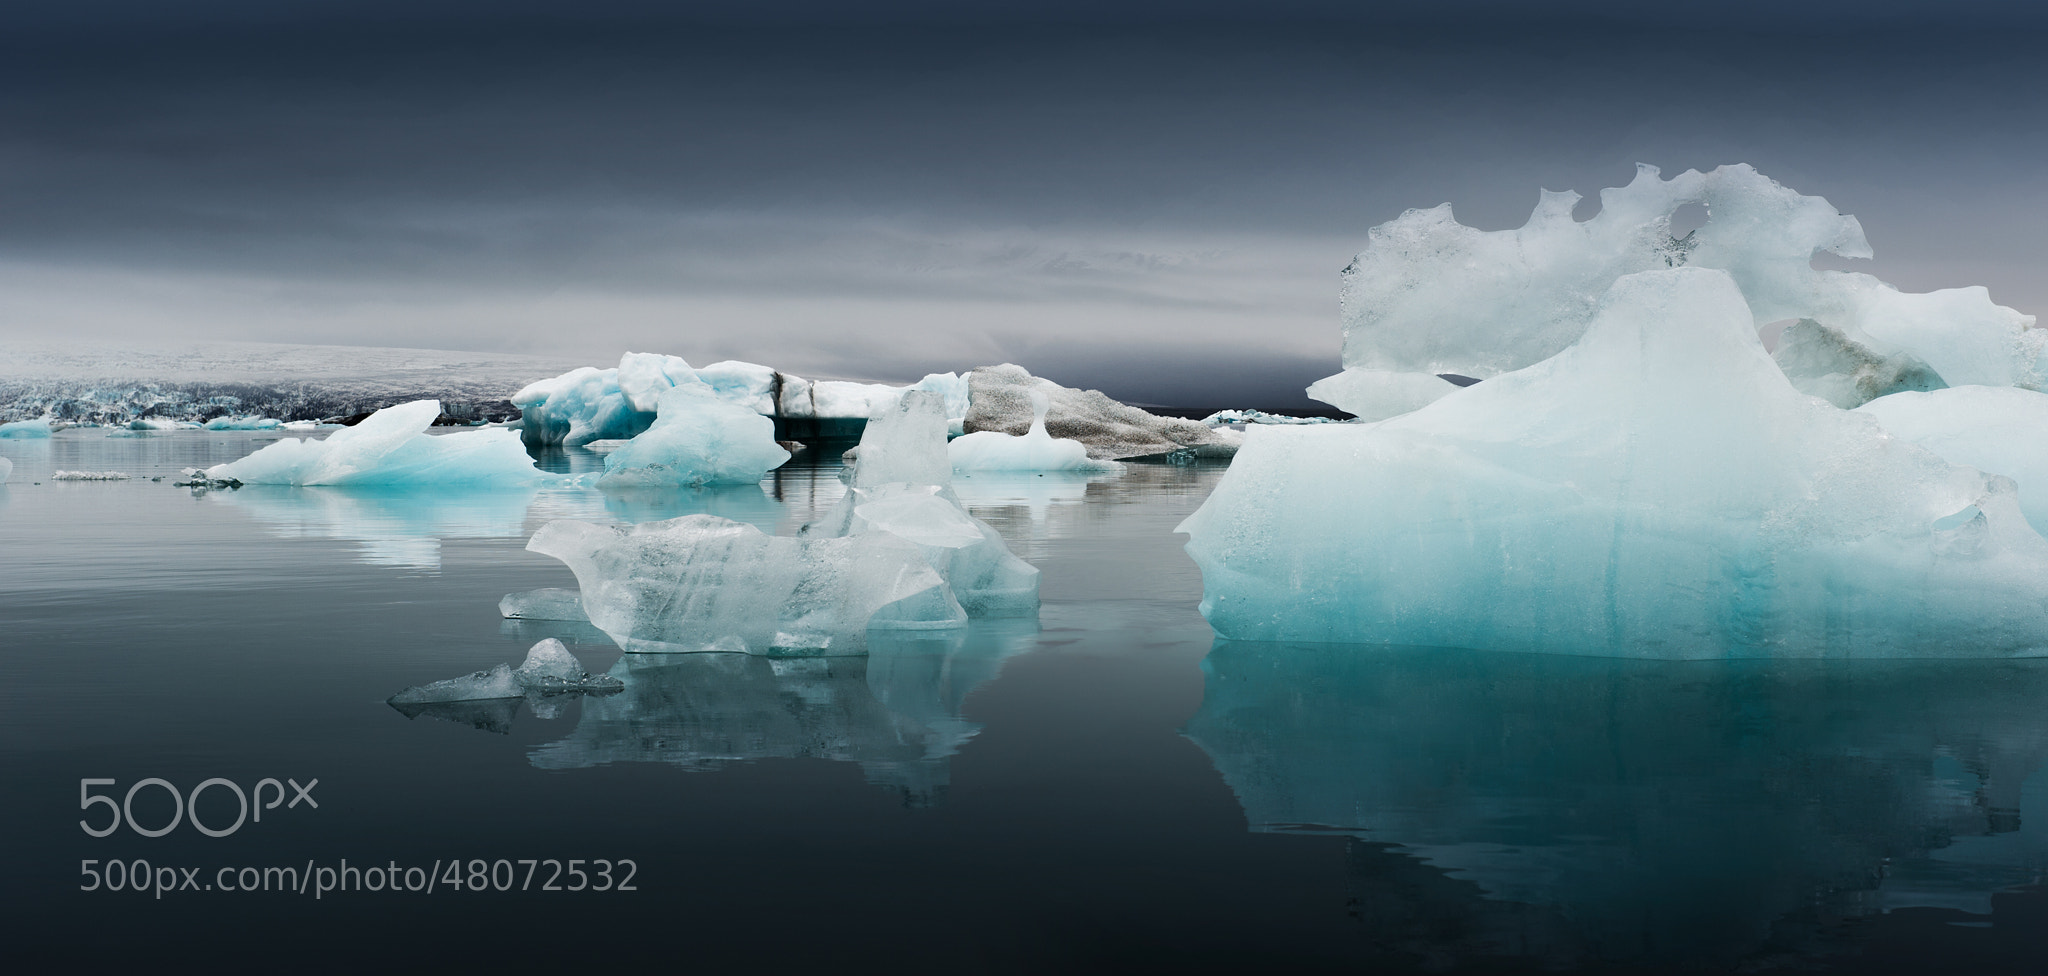 Photograph ICE by Simon Roppel on 500px